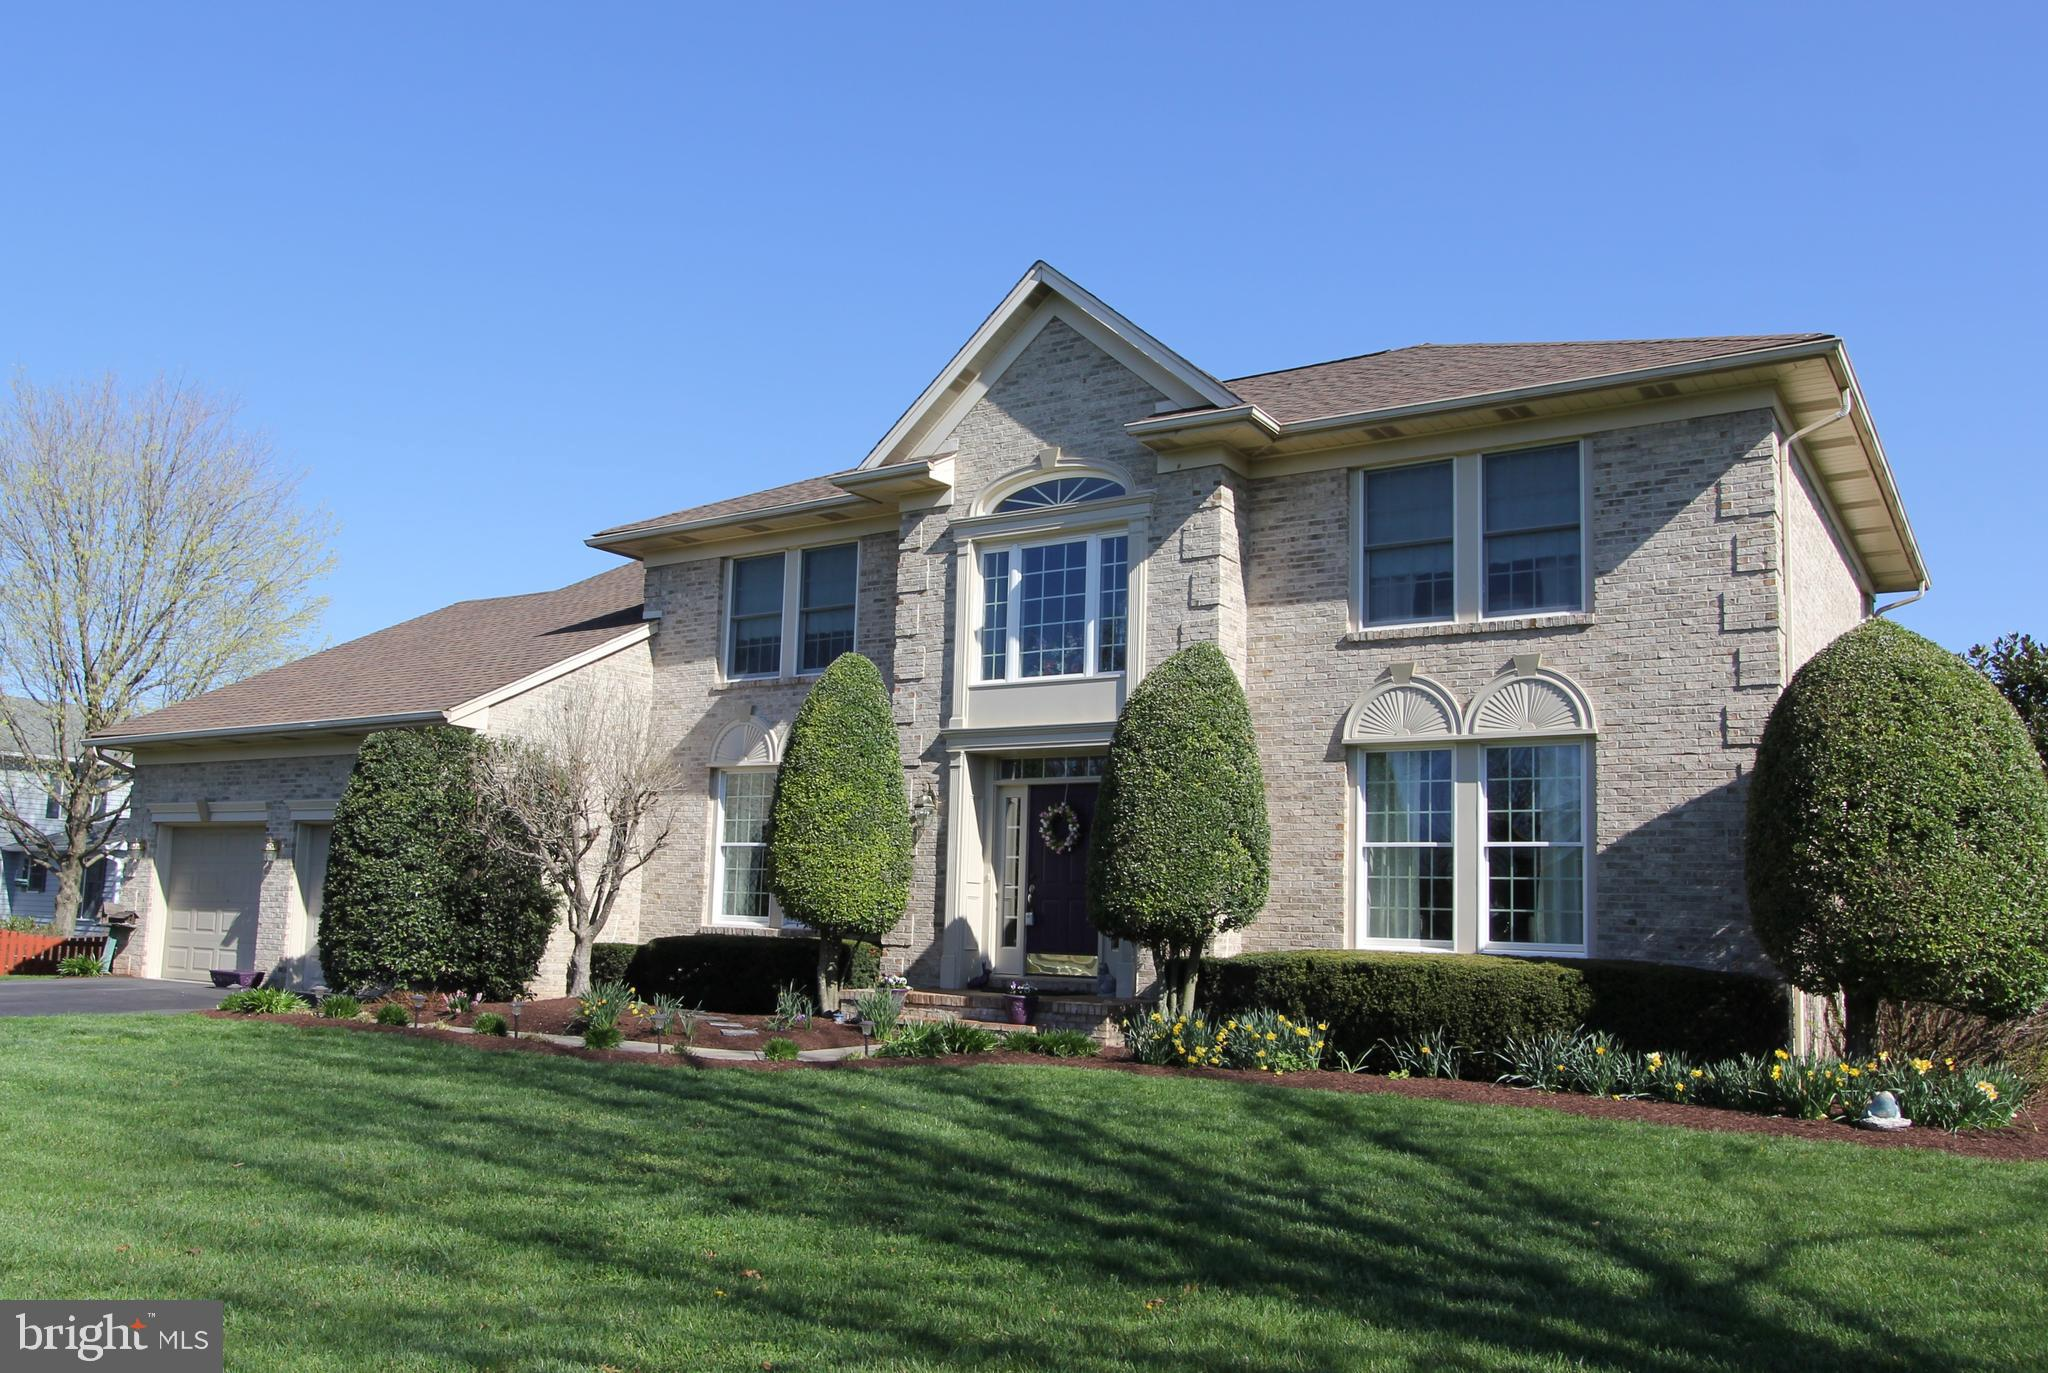 Welcome to this fabulous all-brick four bedroom, 2.5 bath custom colonial on .75 acre flat lot in Cl